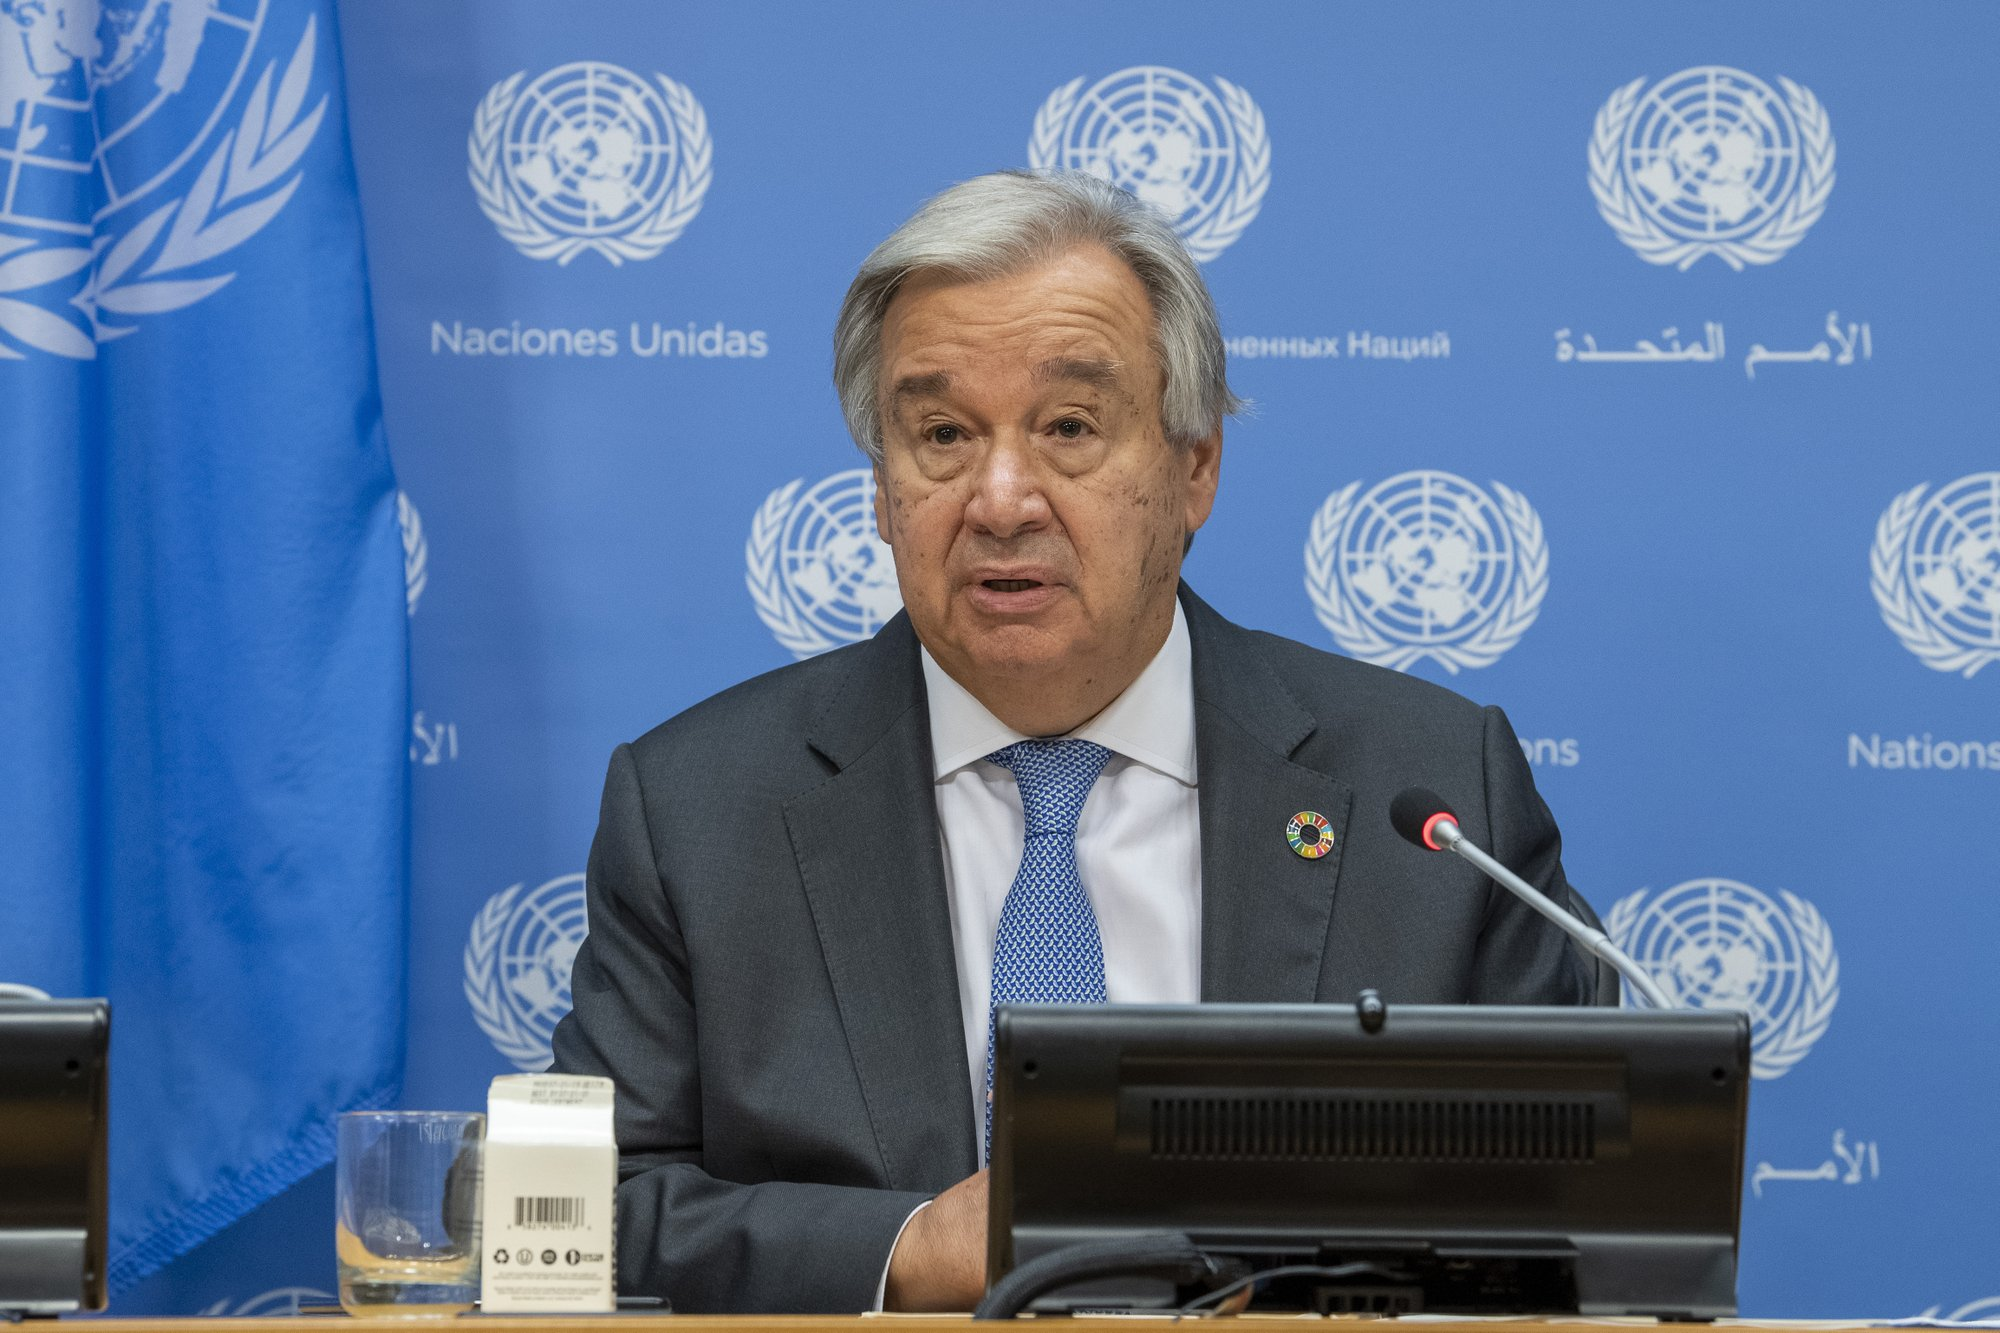 UN Secretary-General Calls for Elimination of Nuclear Weapons